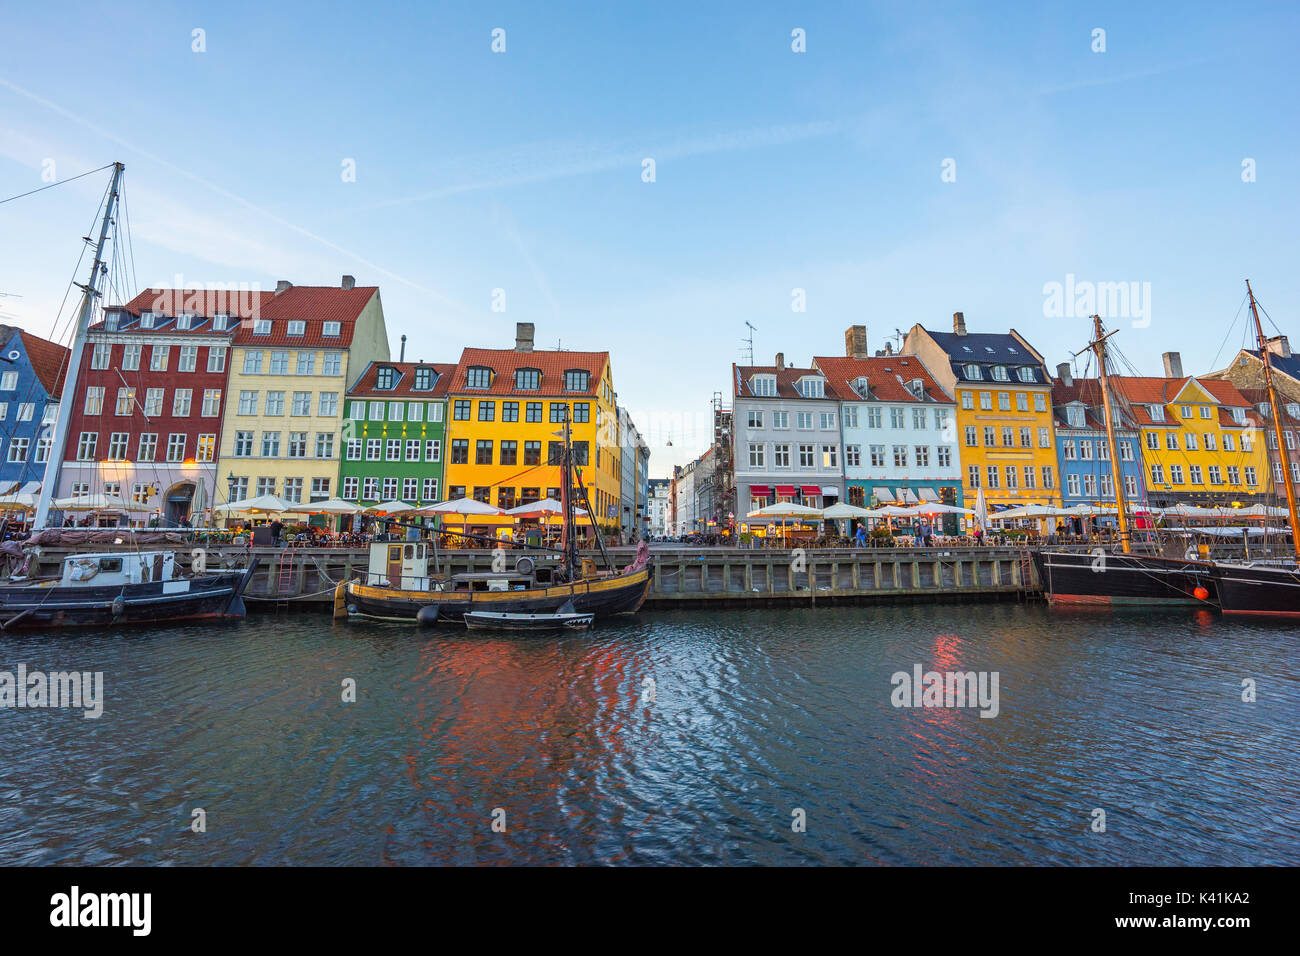 The old house of Nyhavn in Copenhagen, Denmark. - Stock Image